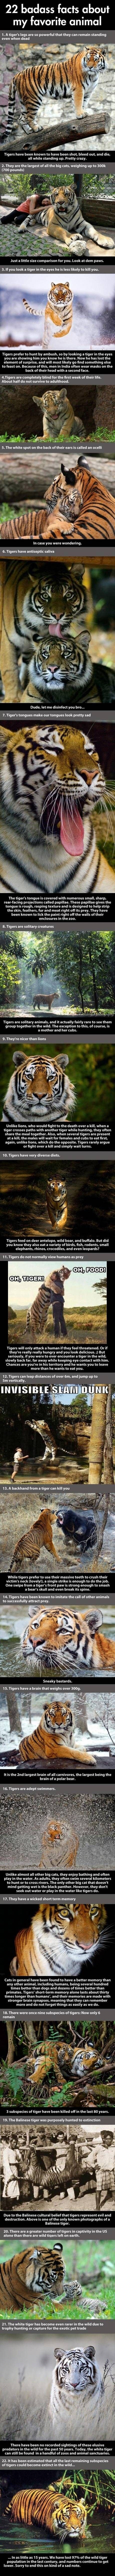 Here are some cool facts about tigers.